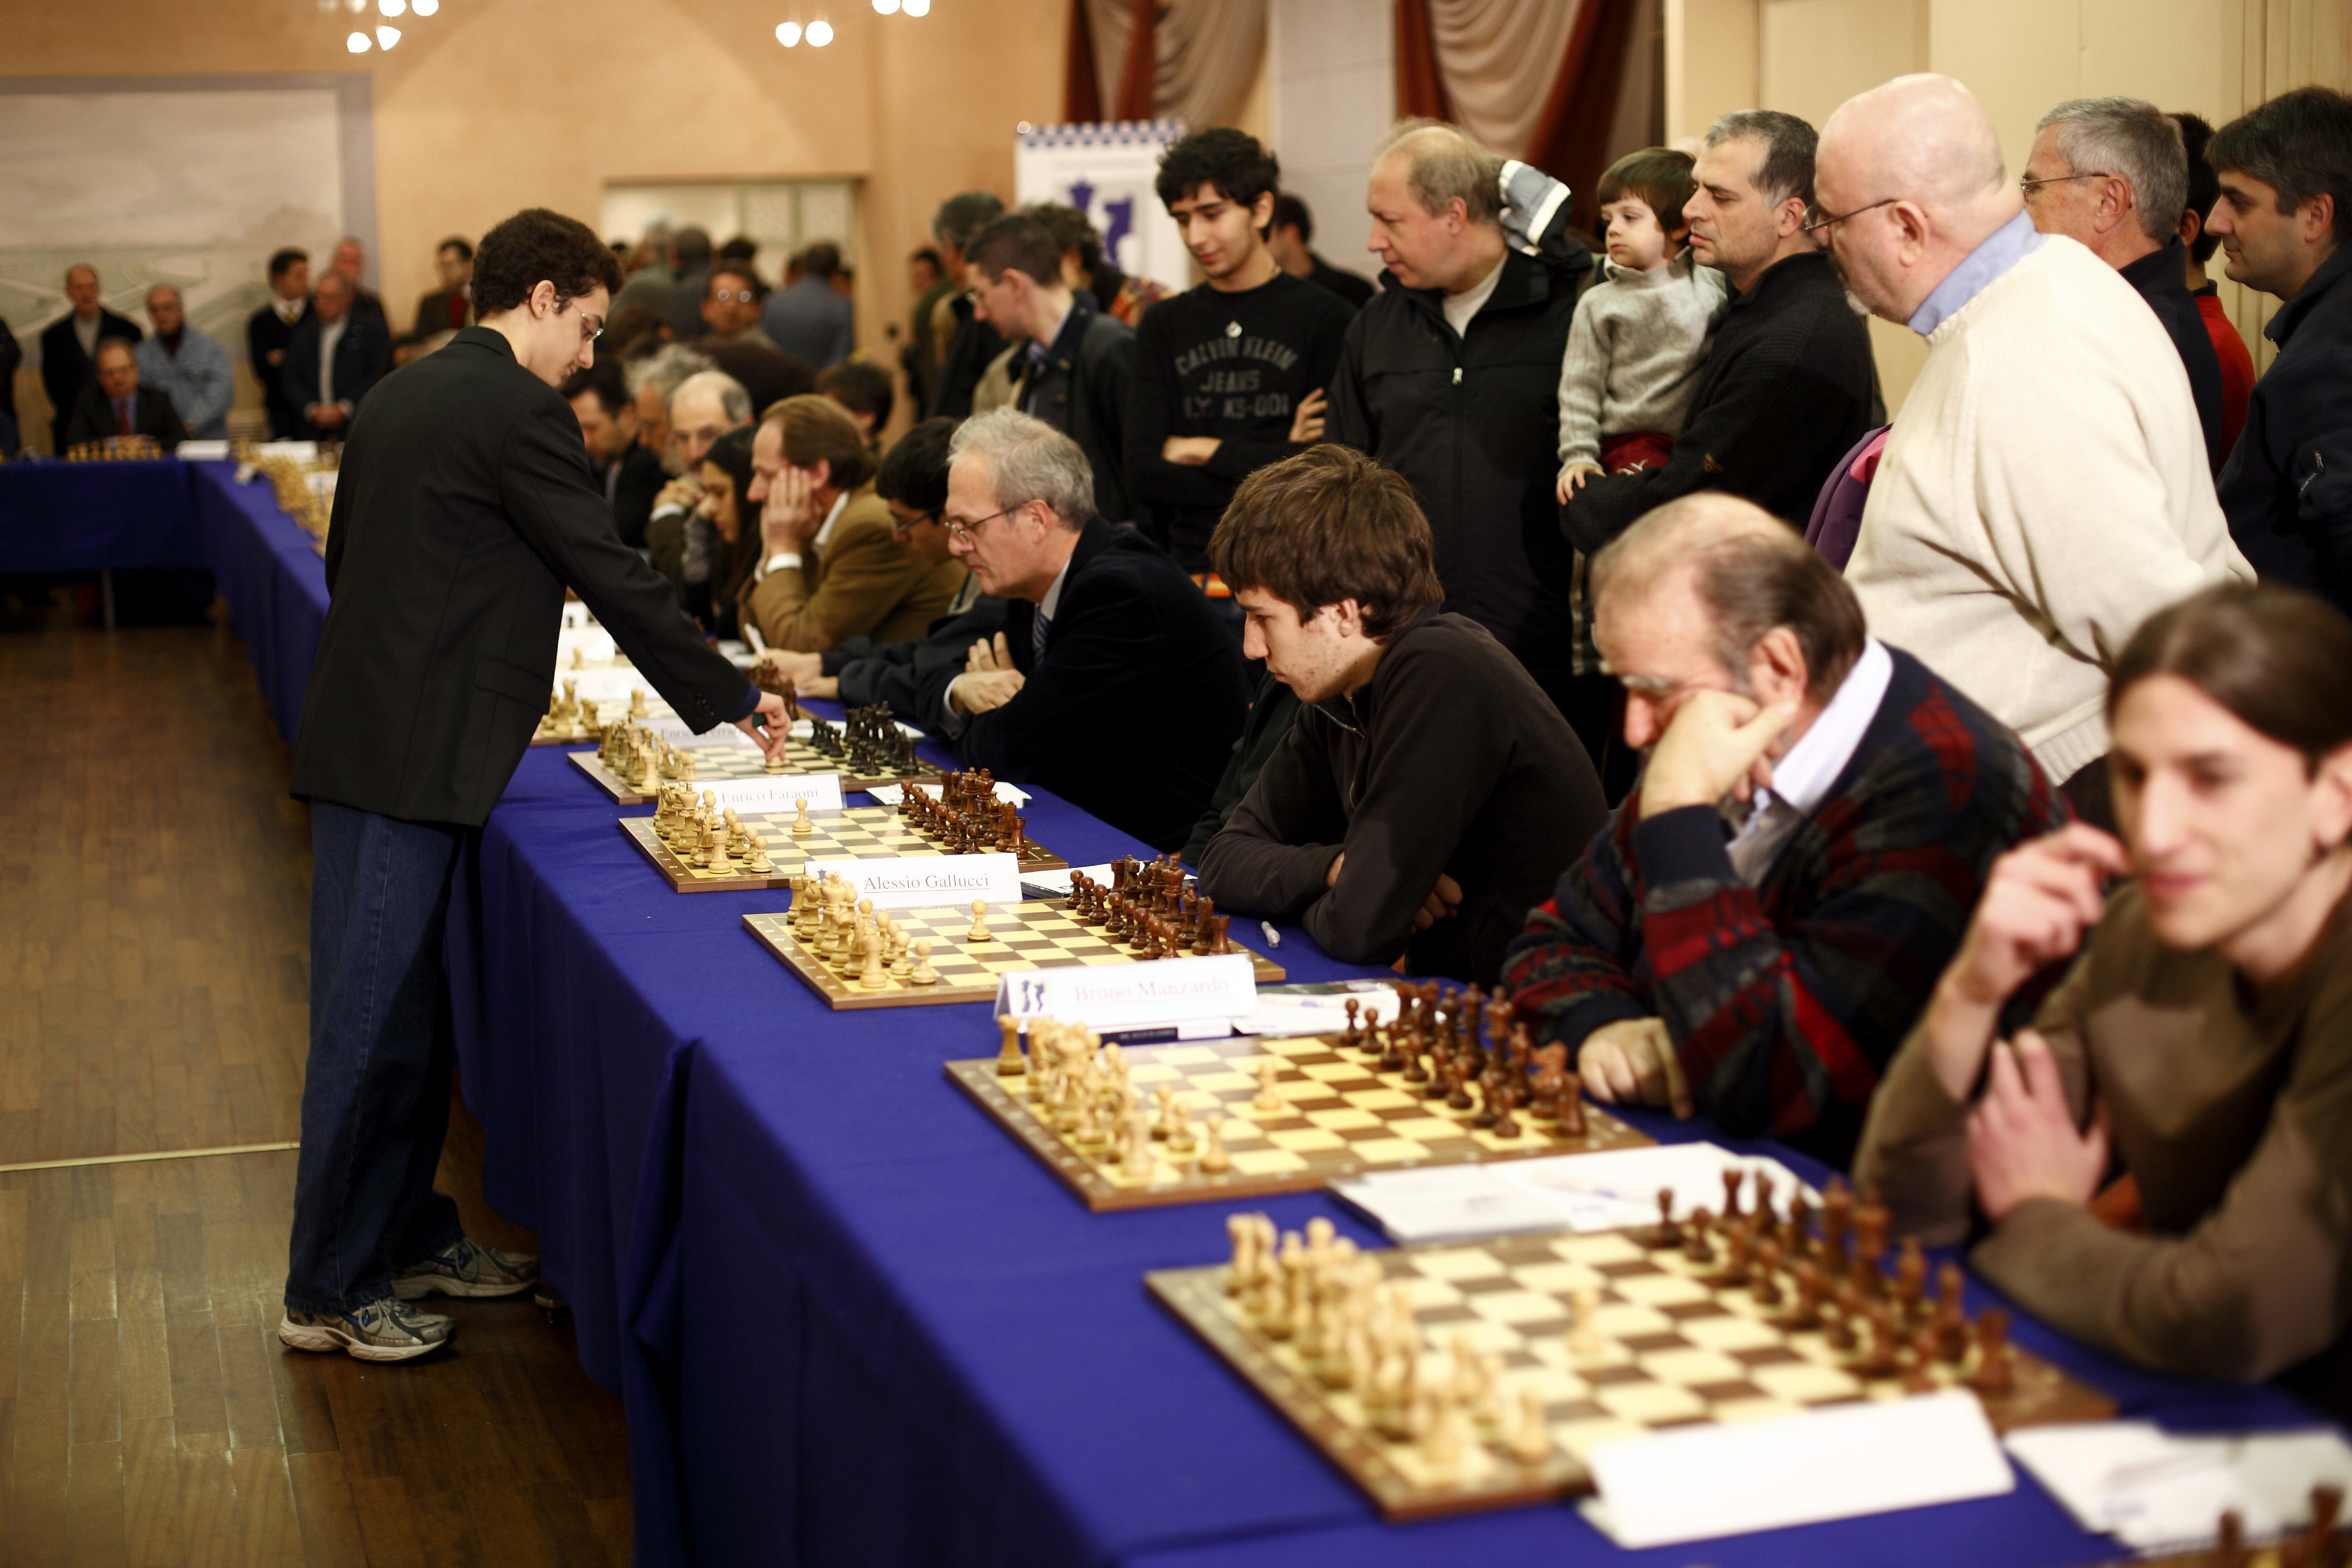 The American Grandmaster Who Could Become World Champion